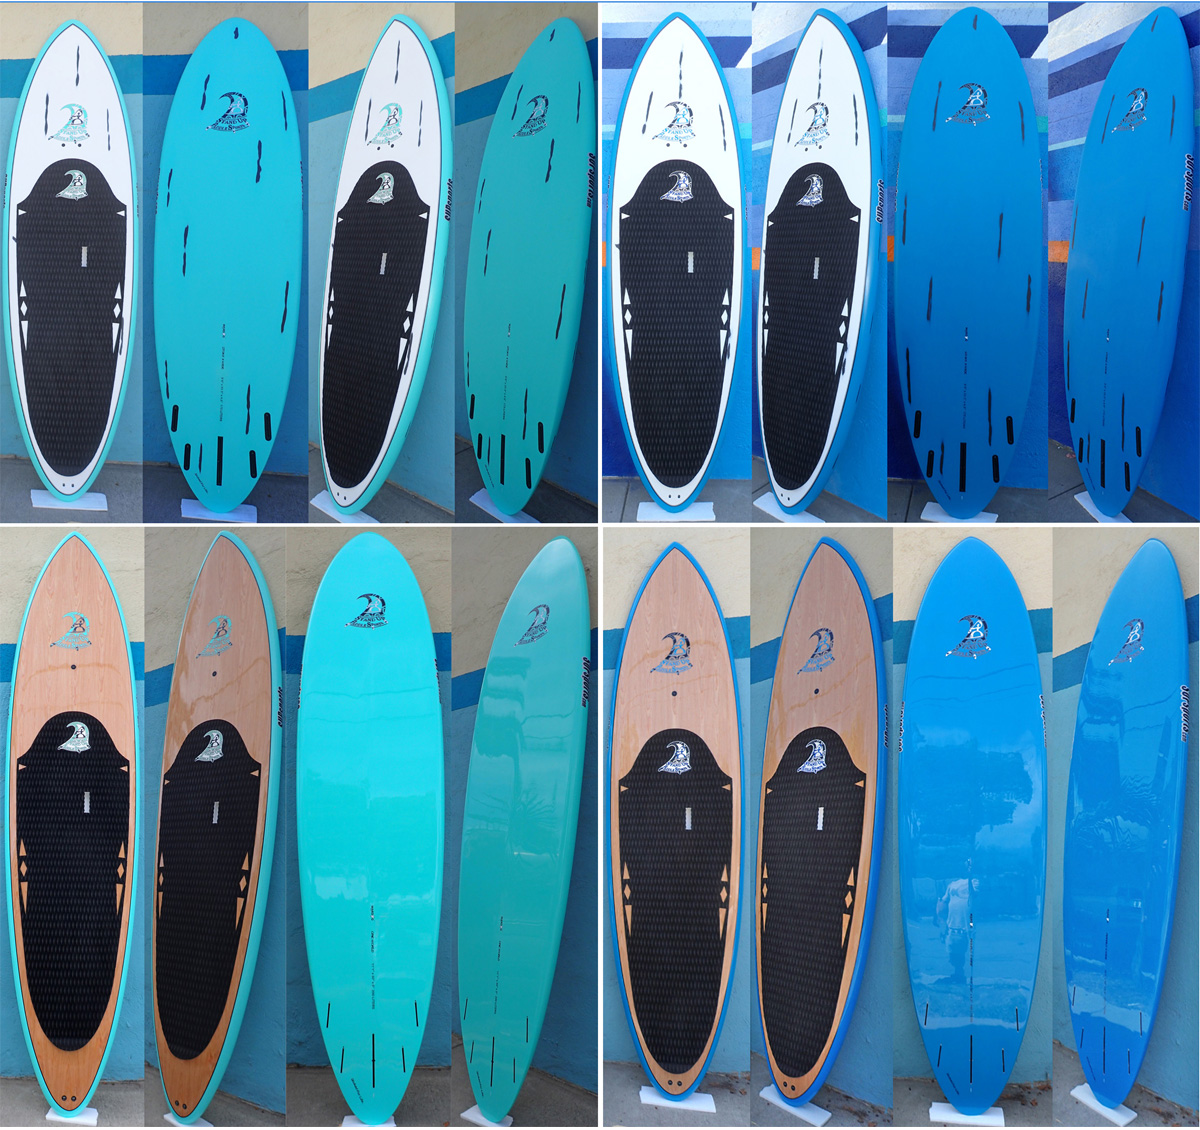 sups production1 1200 New SUP Toys